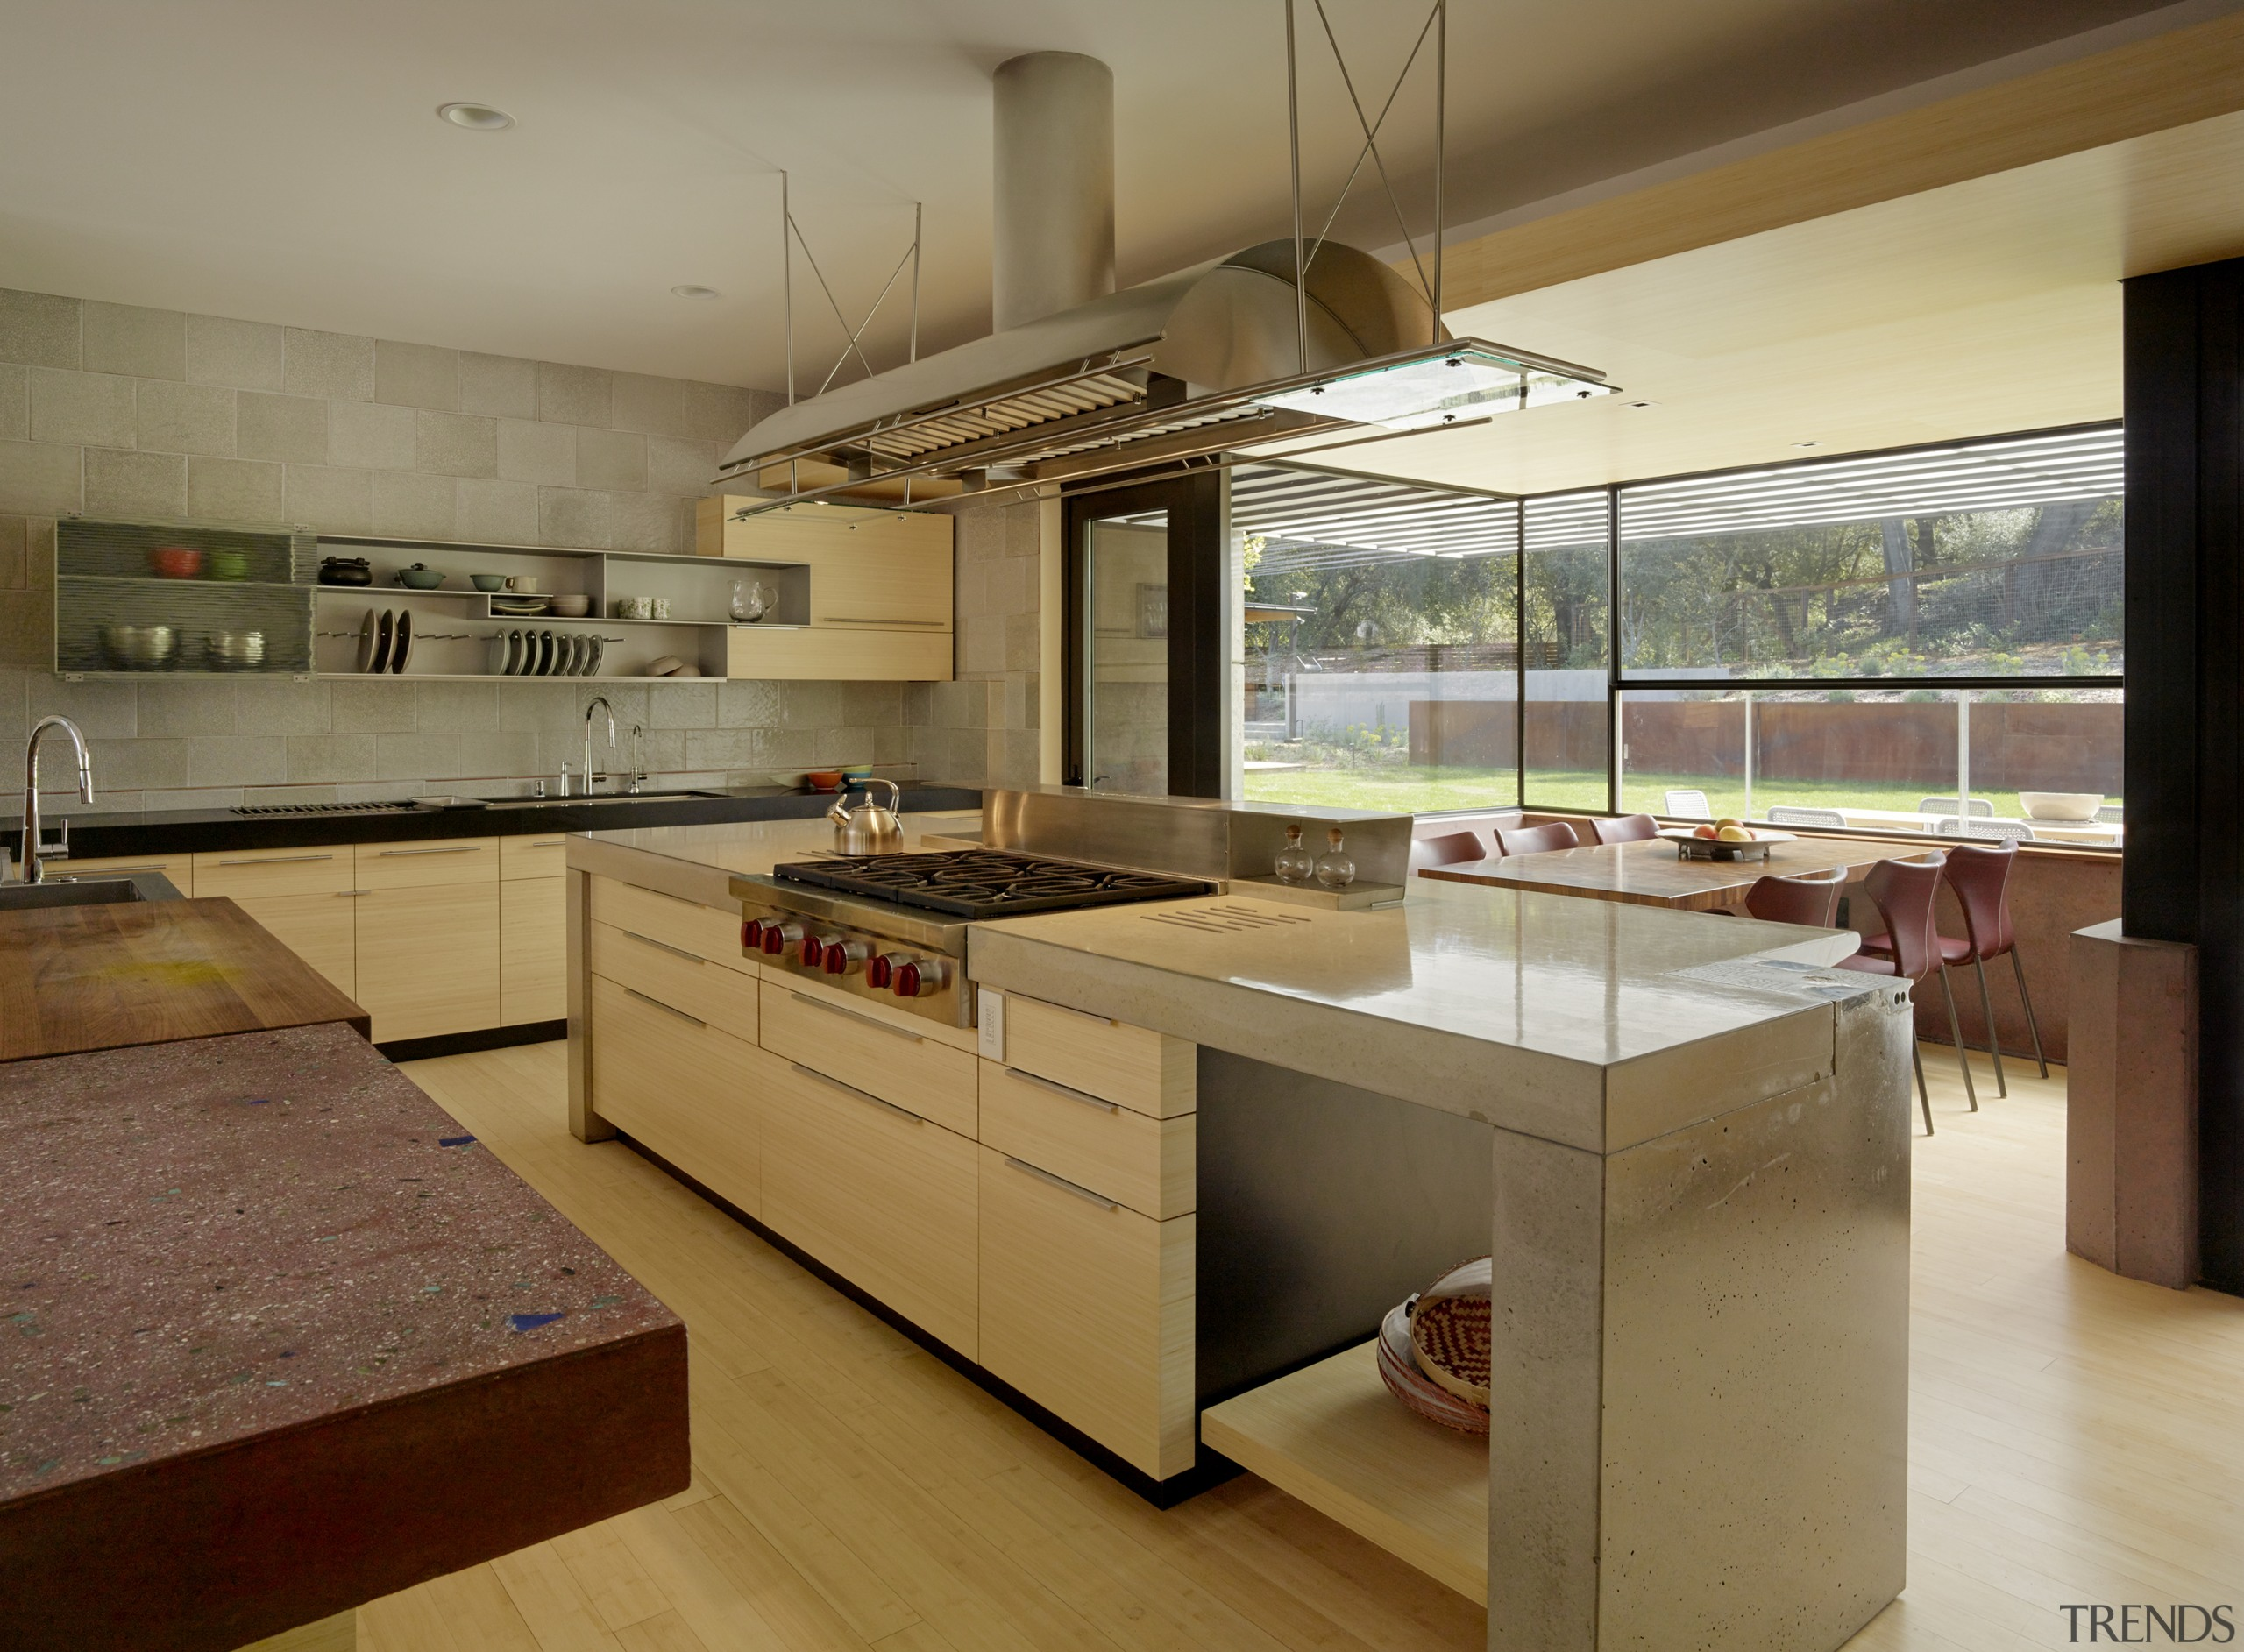 Designed by FuTung Cheng, the hood in this cabinetry, countertop, benchtop, interior design, kitchen, FuTung Cheng, Cheng Design, custom hood